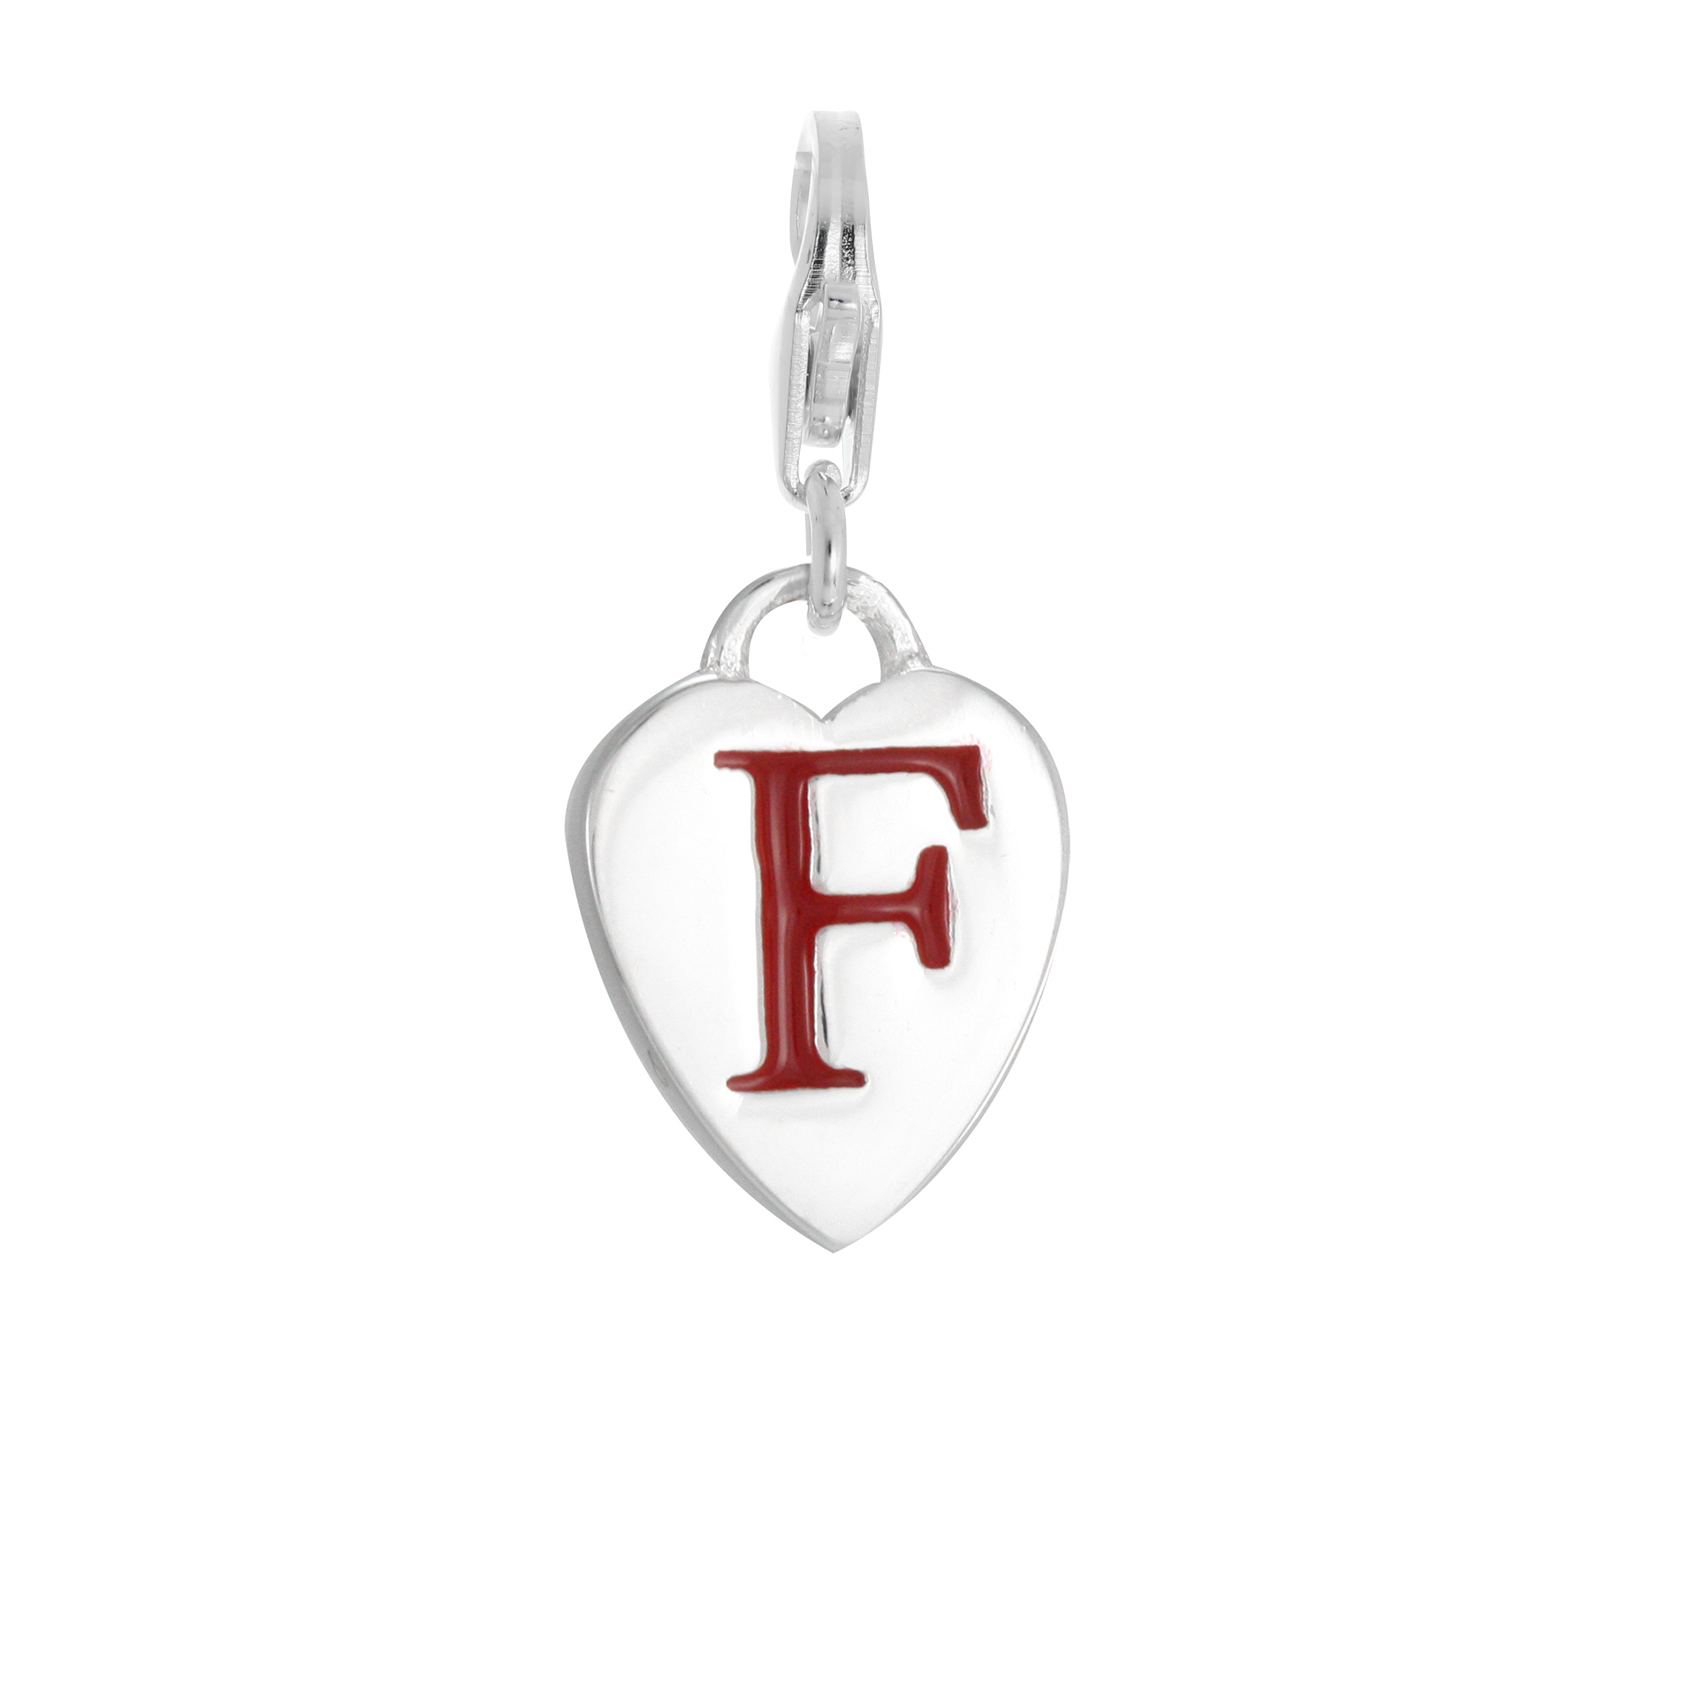 An image of Sterling Silver Enamel Heart Alphabet Letter F Charm on Clip